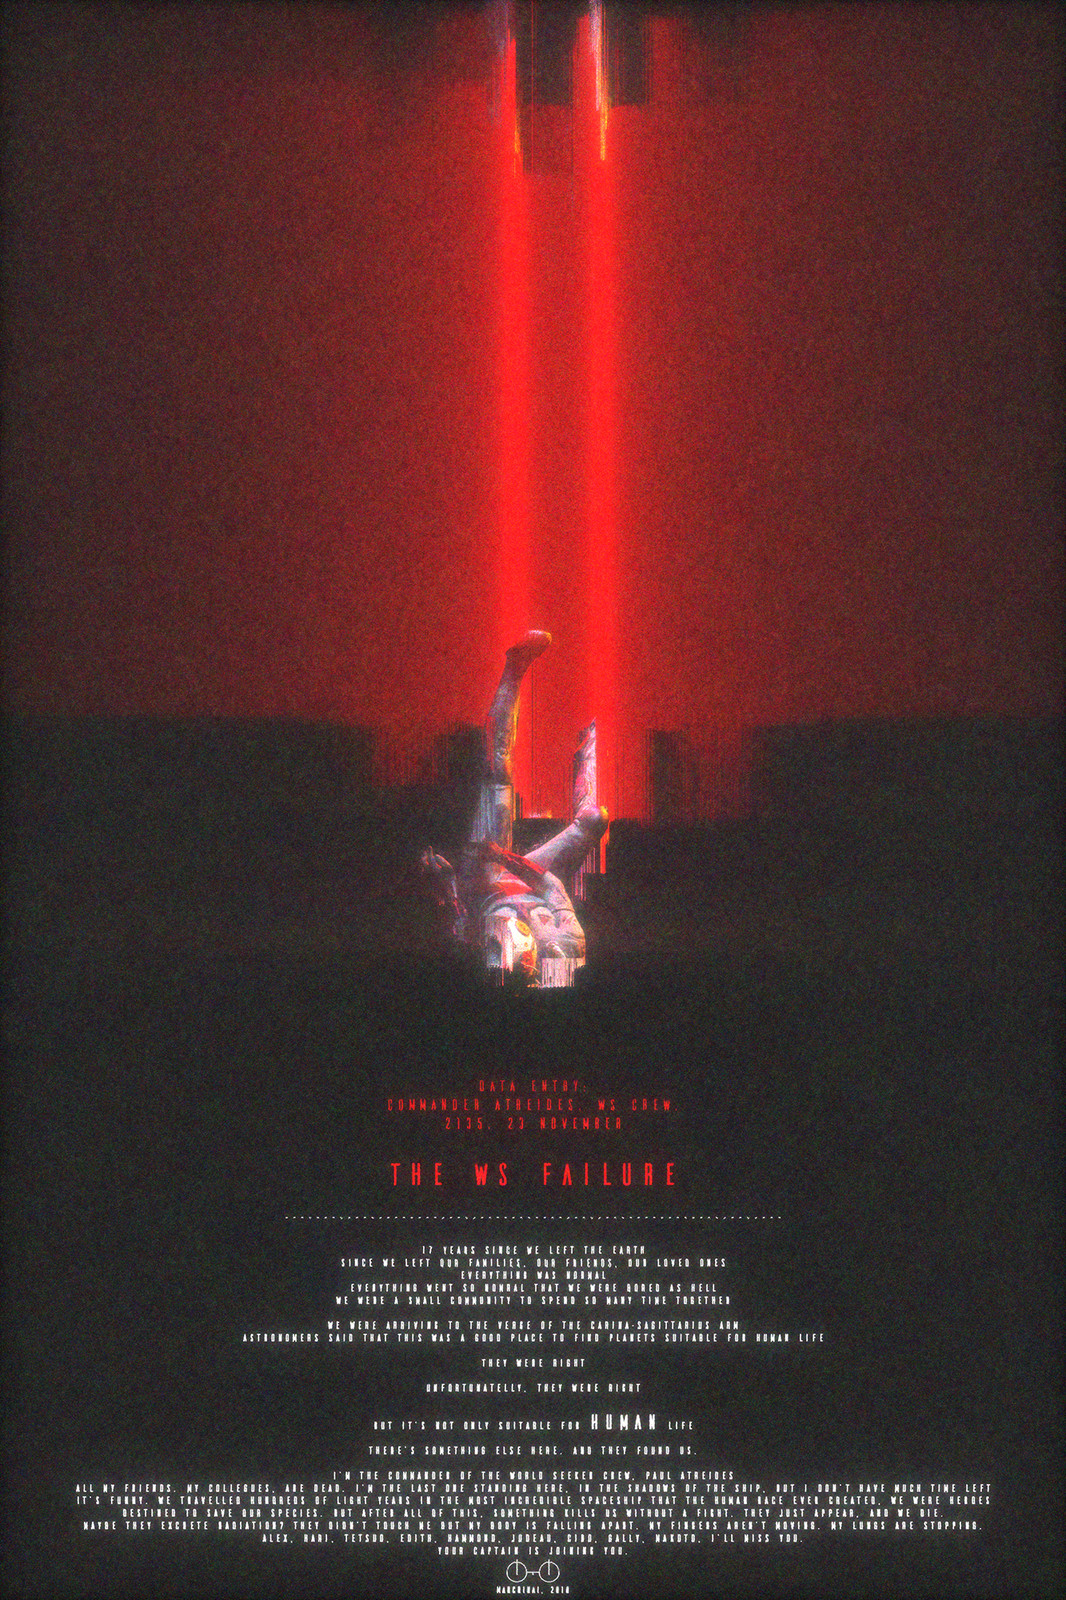 Concept promotional poster for the project vintage edition